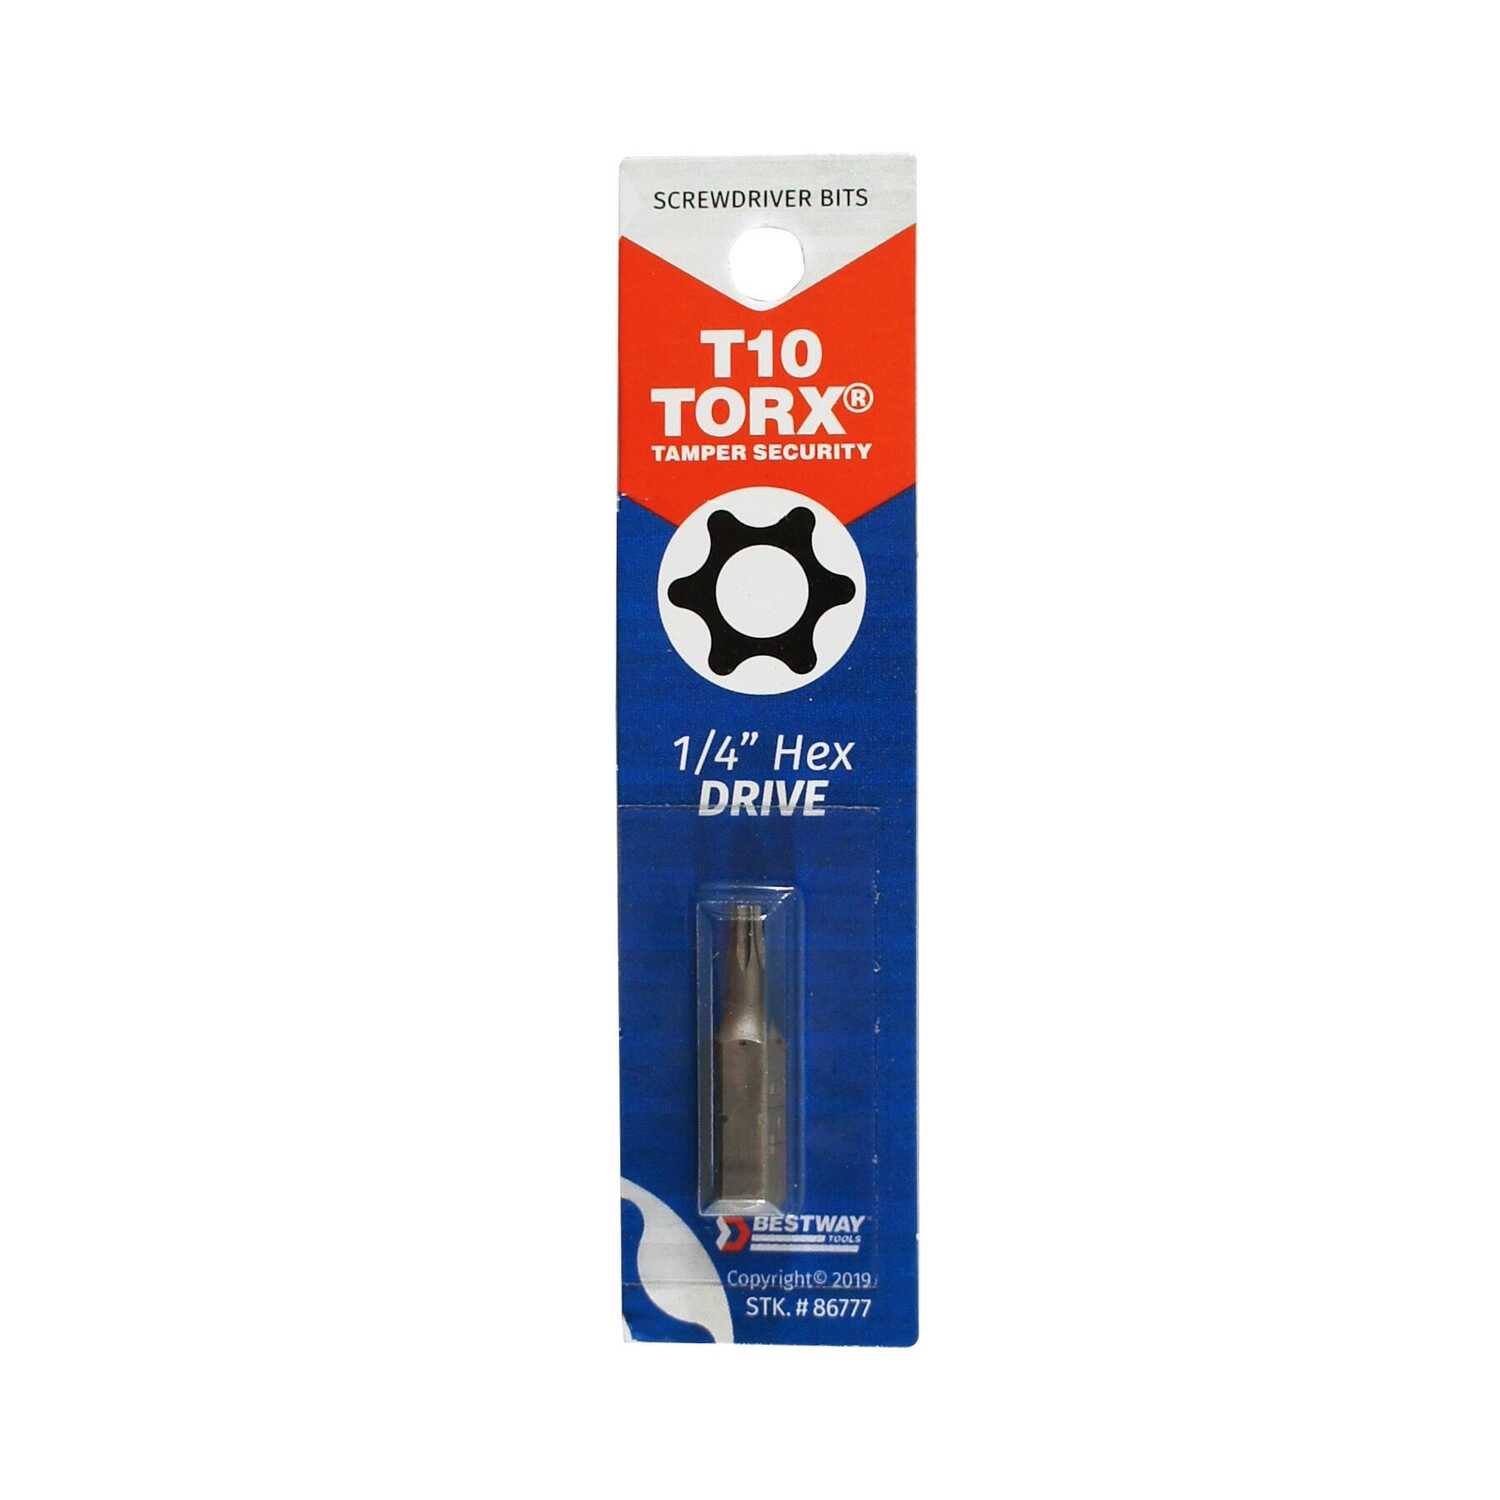 Best Way Tools  Torx  1 in. L x 1/4 in.  Screwdriver Bit  1/4 in. Hex Shank  Carbon Steel  1 pc.